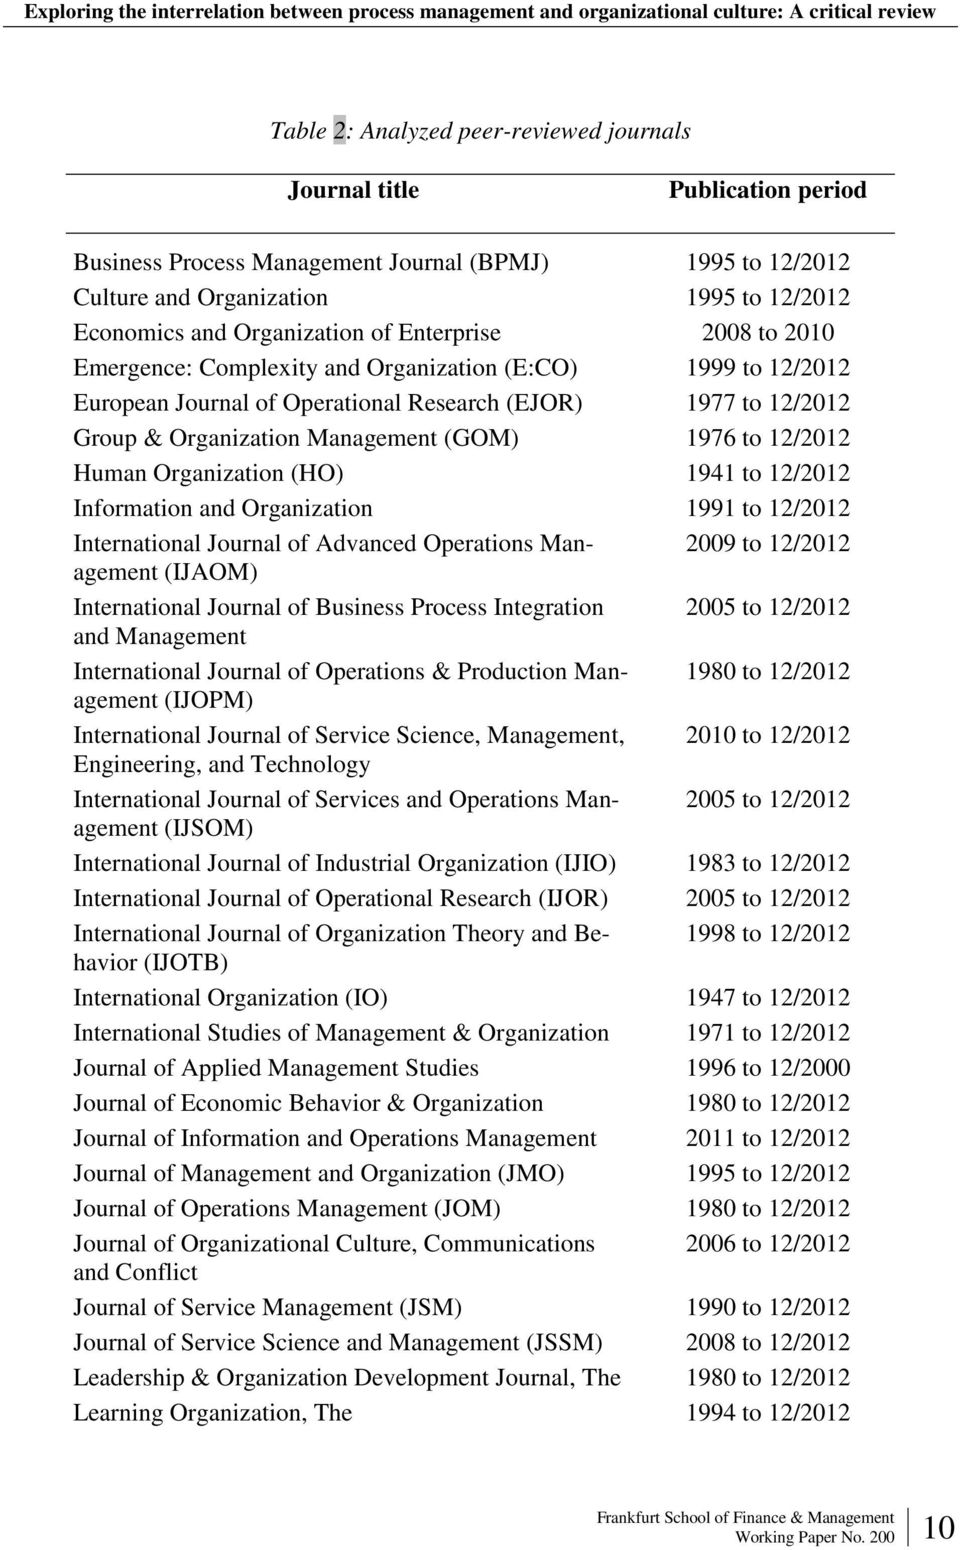 (GOM) 1976 to 12/2012 Human Organization (HO) 1941 to 12/2012 Information and Organization 1991 to 12/2012 International Journal of Advanced Operations Management 2009 to 12/2012 (IJAOM)